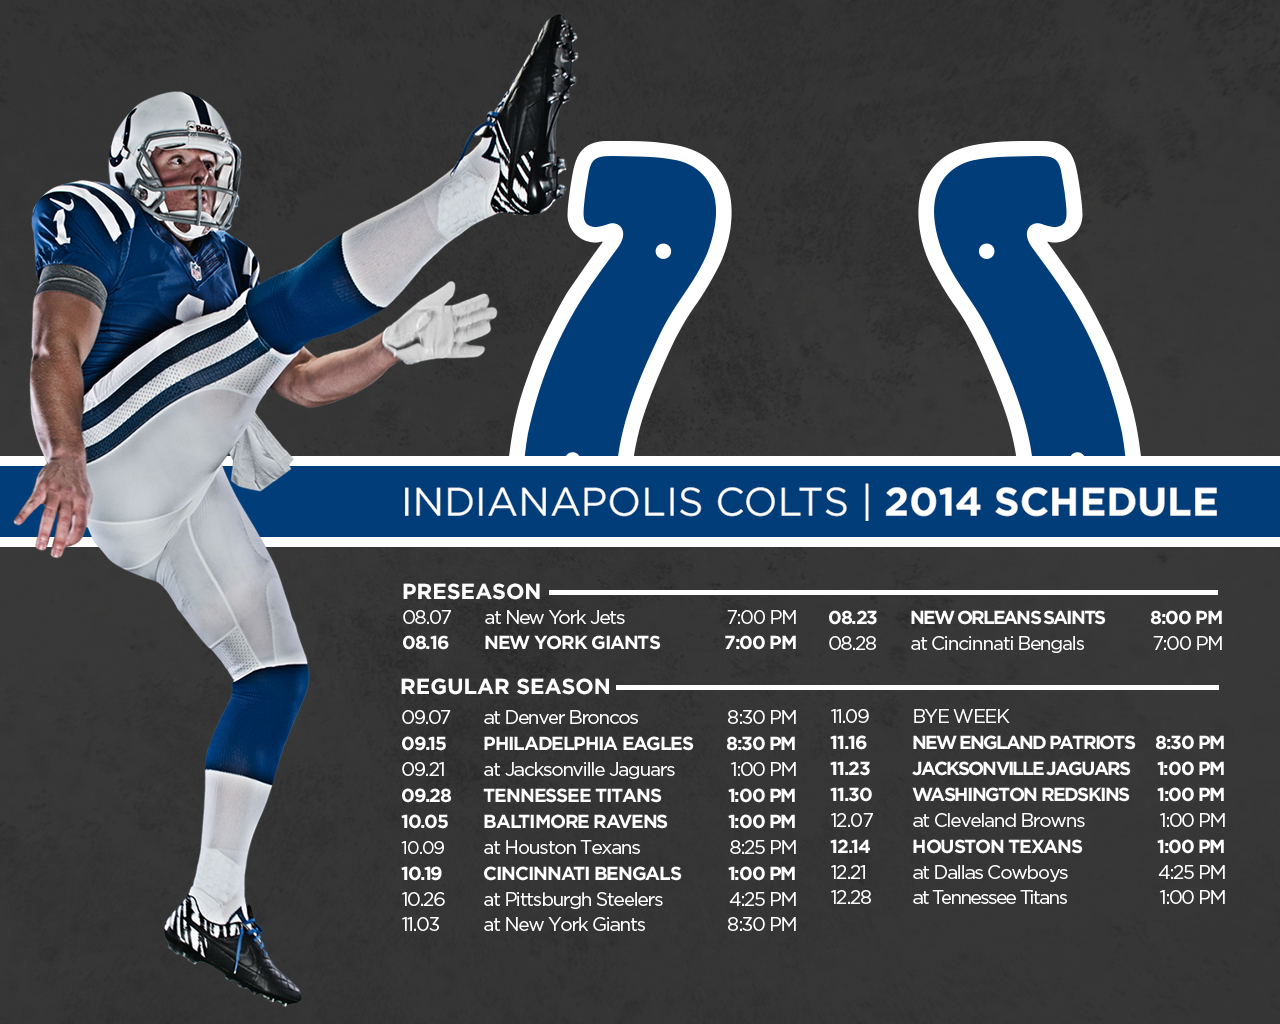 Indianapolis Colts Wallpaper 2014 - WallpaperSafari